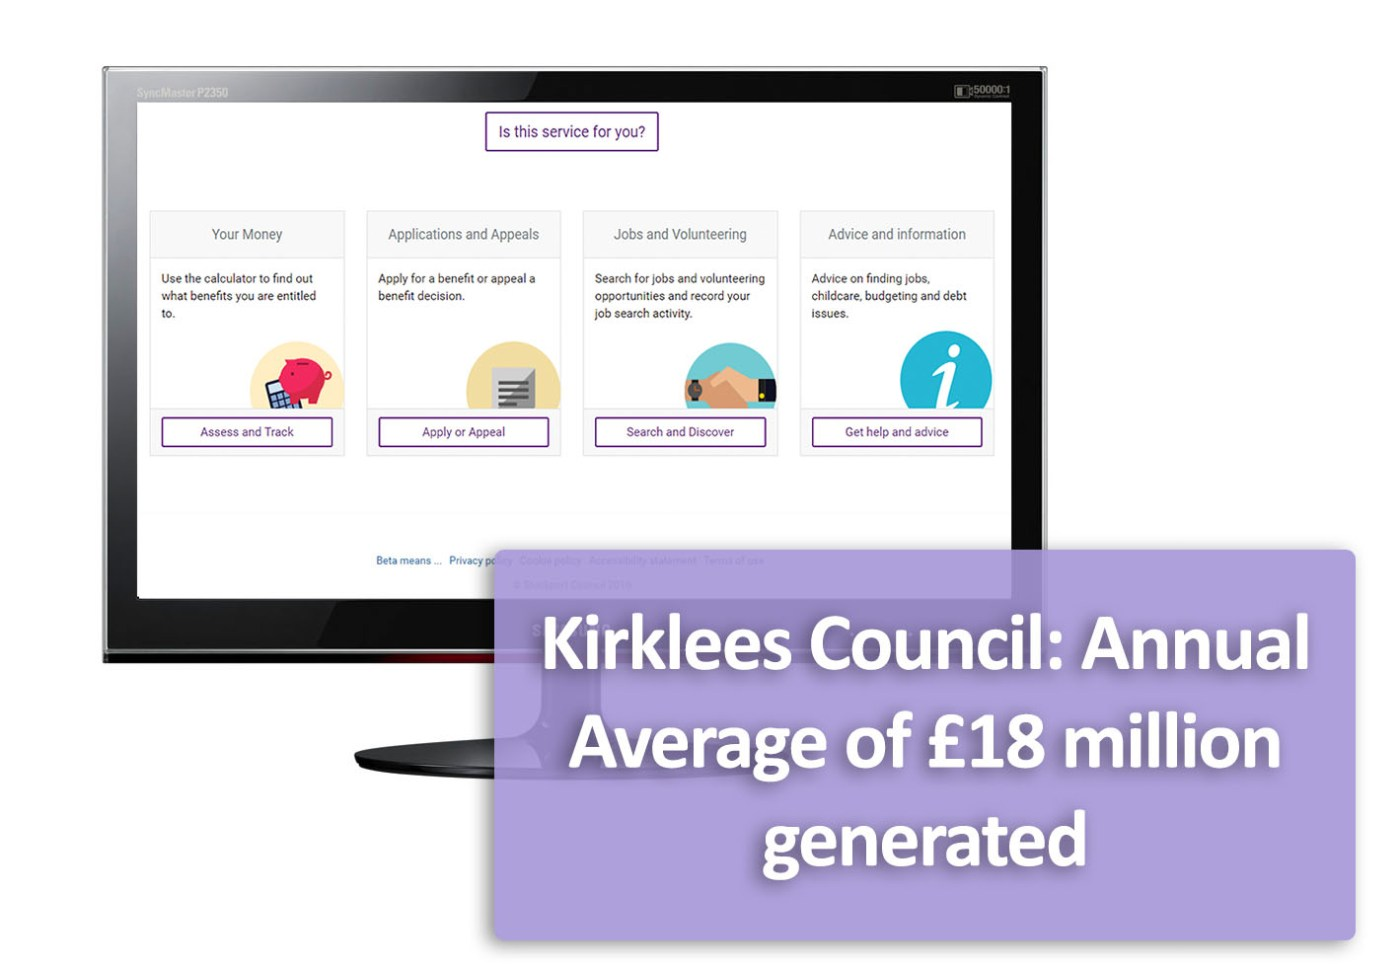 £18 million generated for Kirklees Council